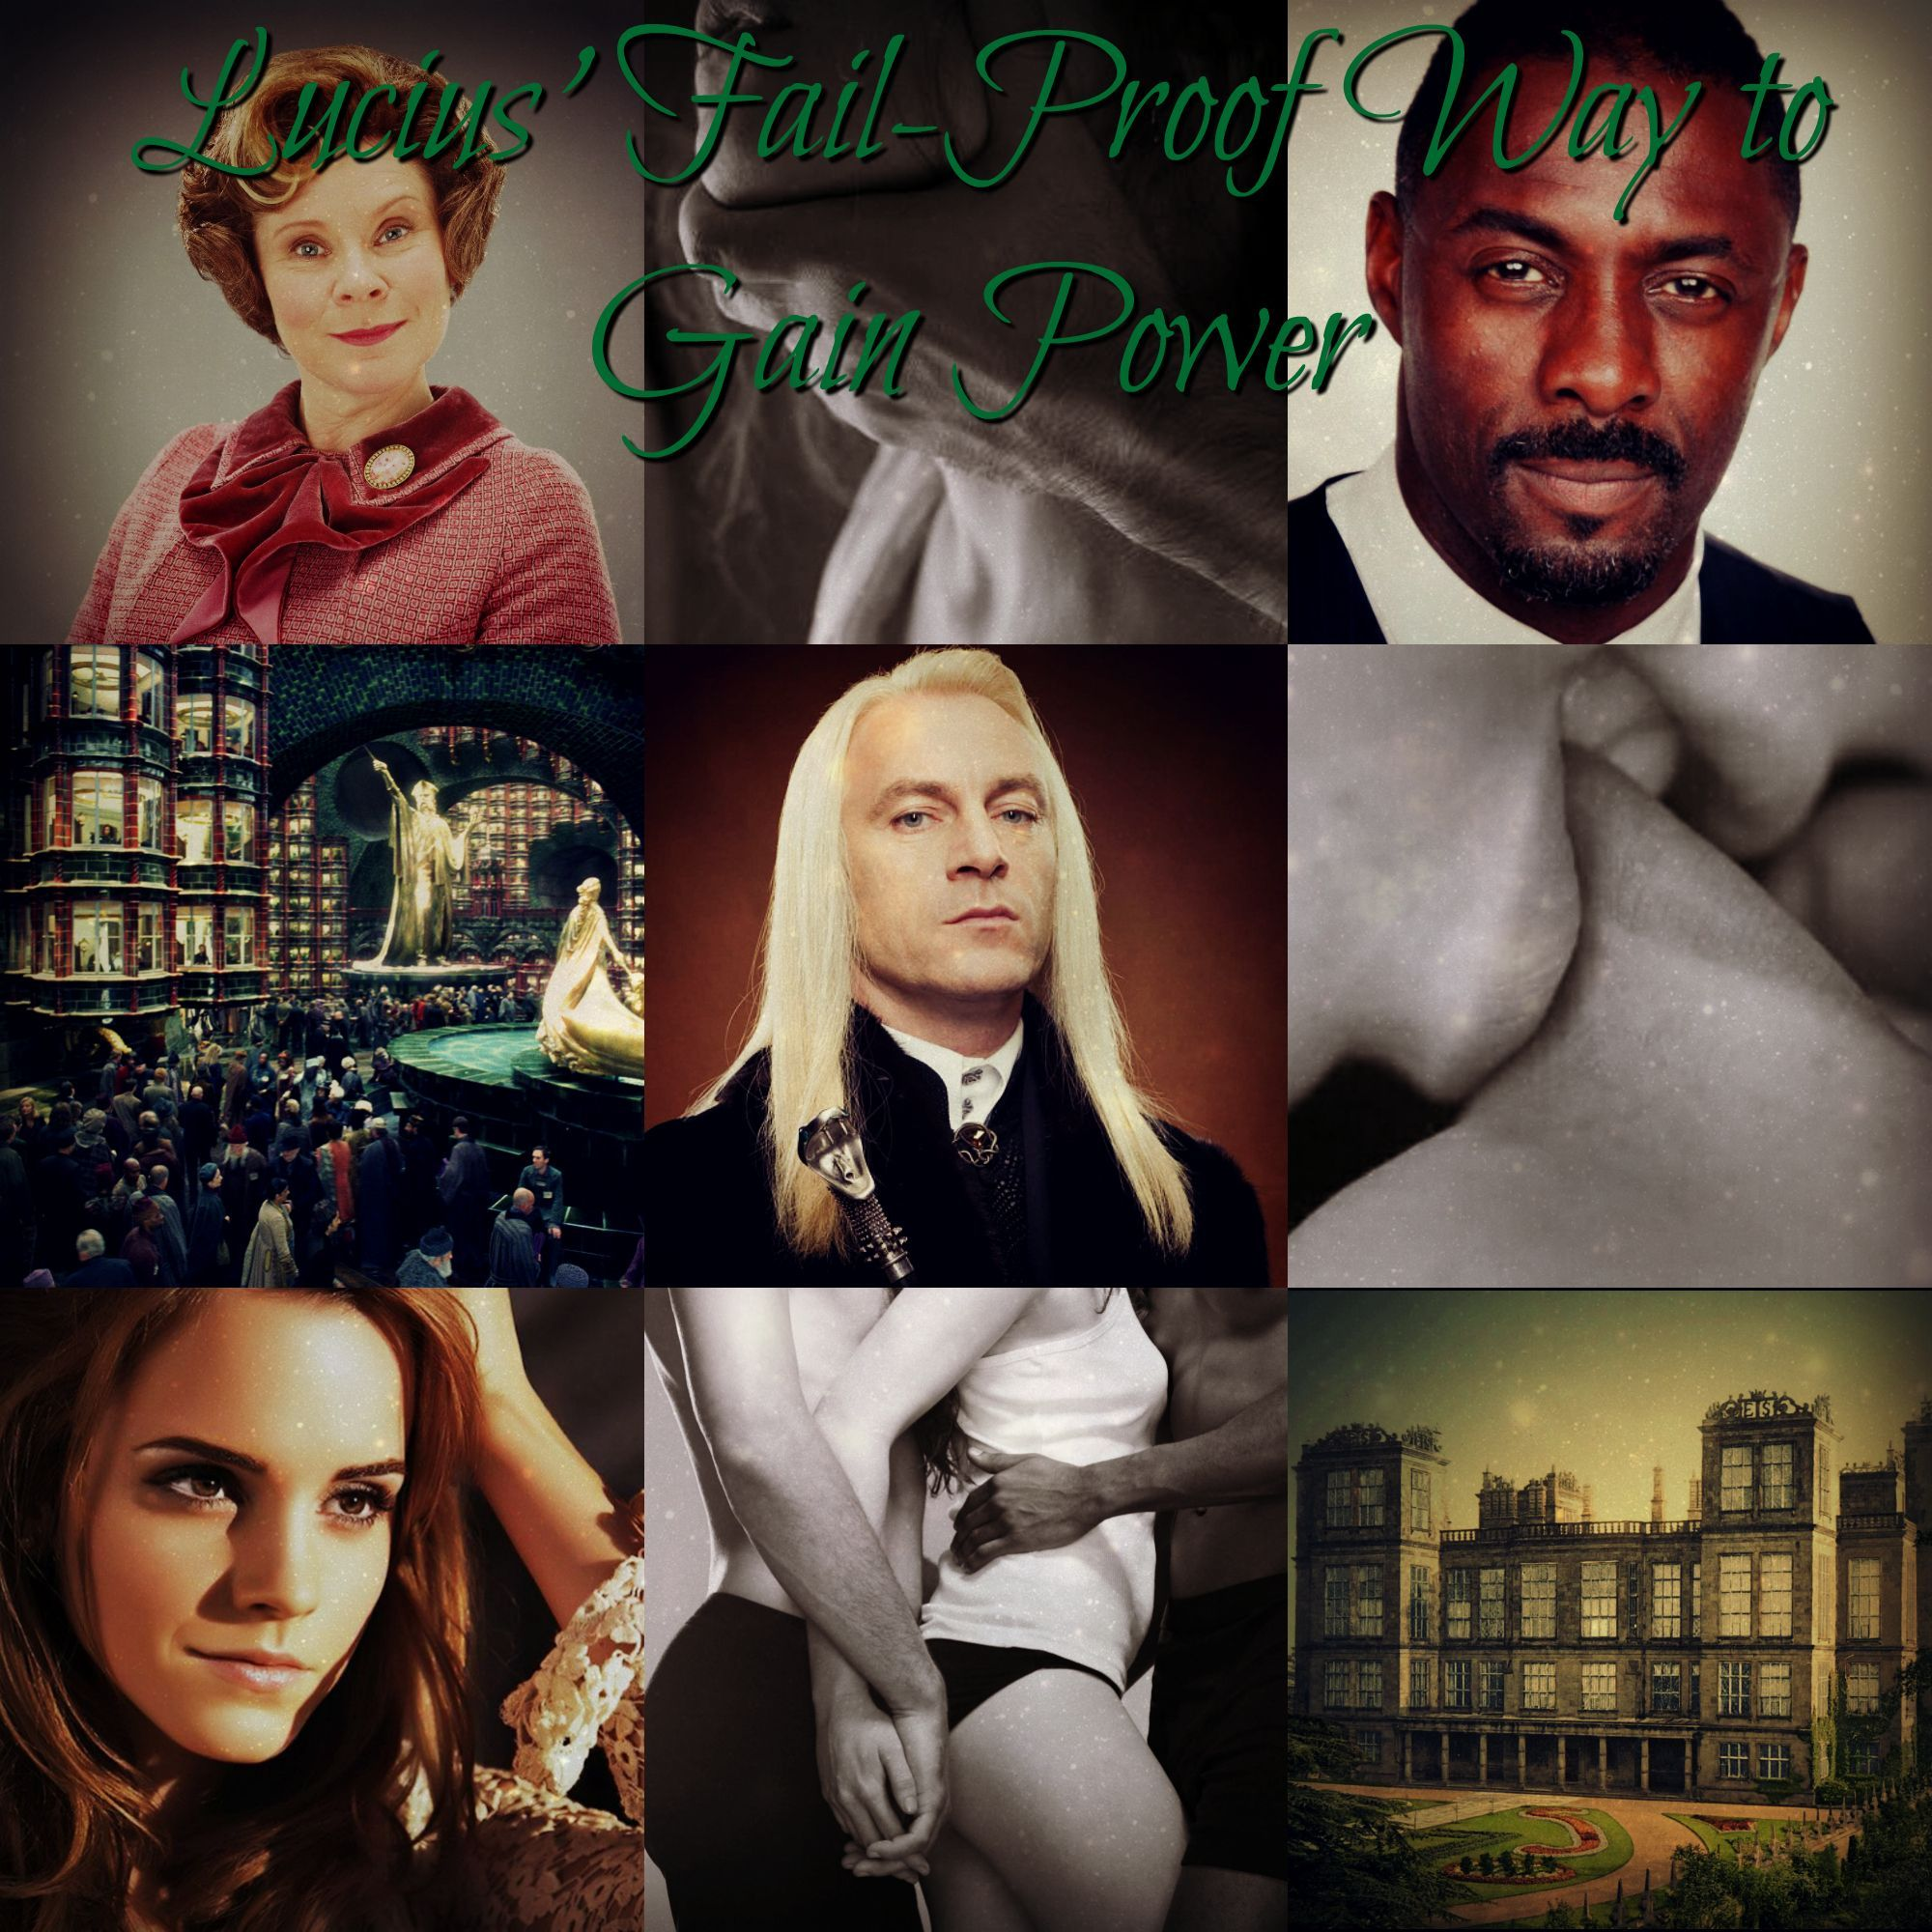 Lucius Fail Proof Way To Gain Power Chapter 1 Crochetaway Harry Potter J K Rowling Archive Of Our Own Harry Potter Chapter Harry